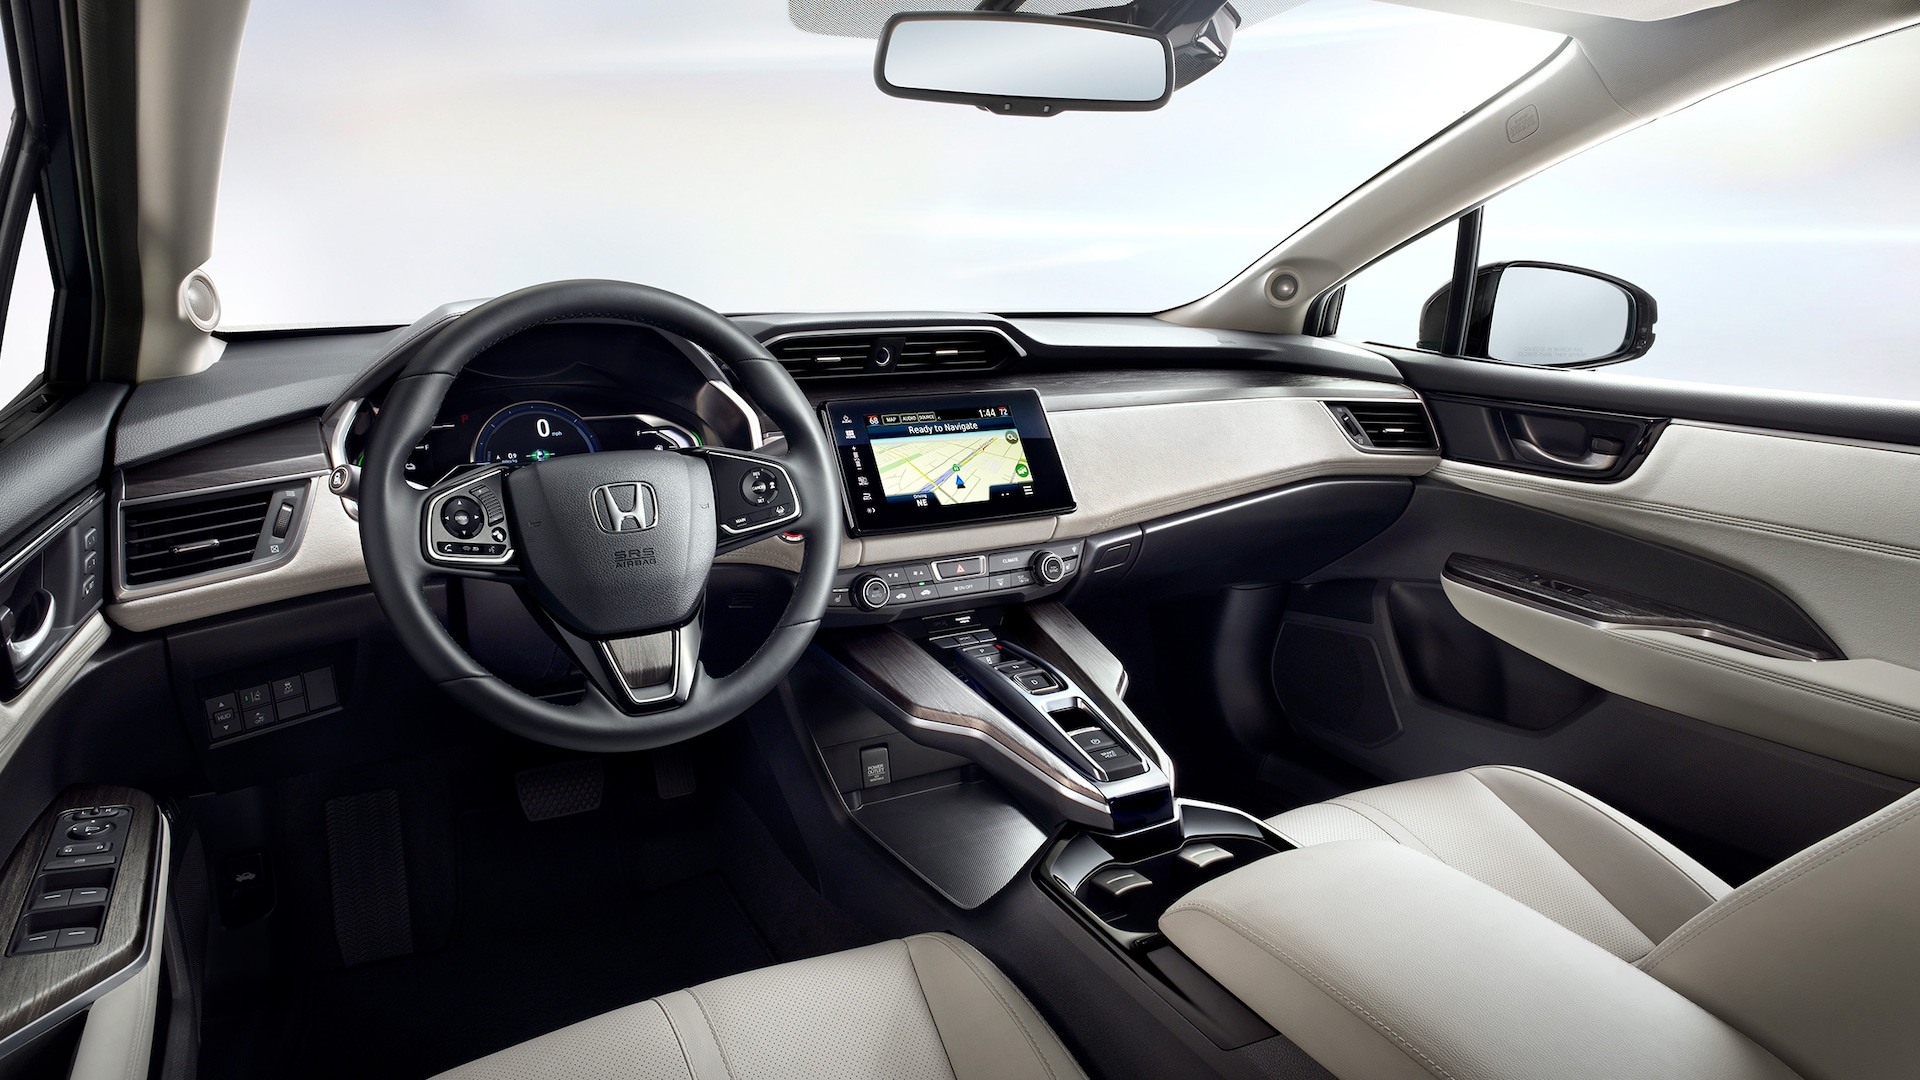 Driver's point of view of instrument panel of 2021 Honda Clarity Fuel Cell.